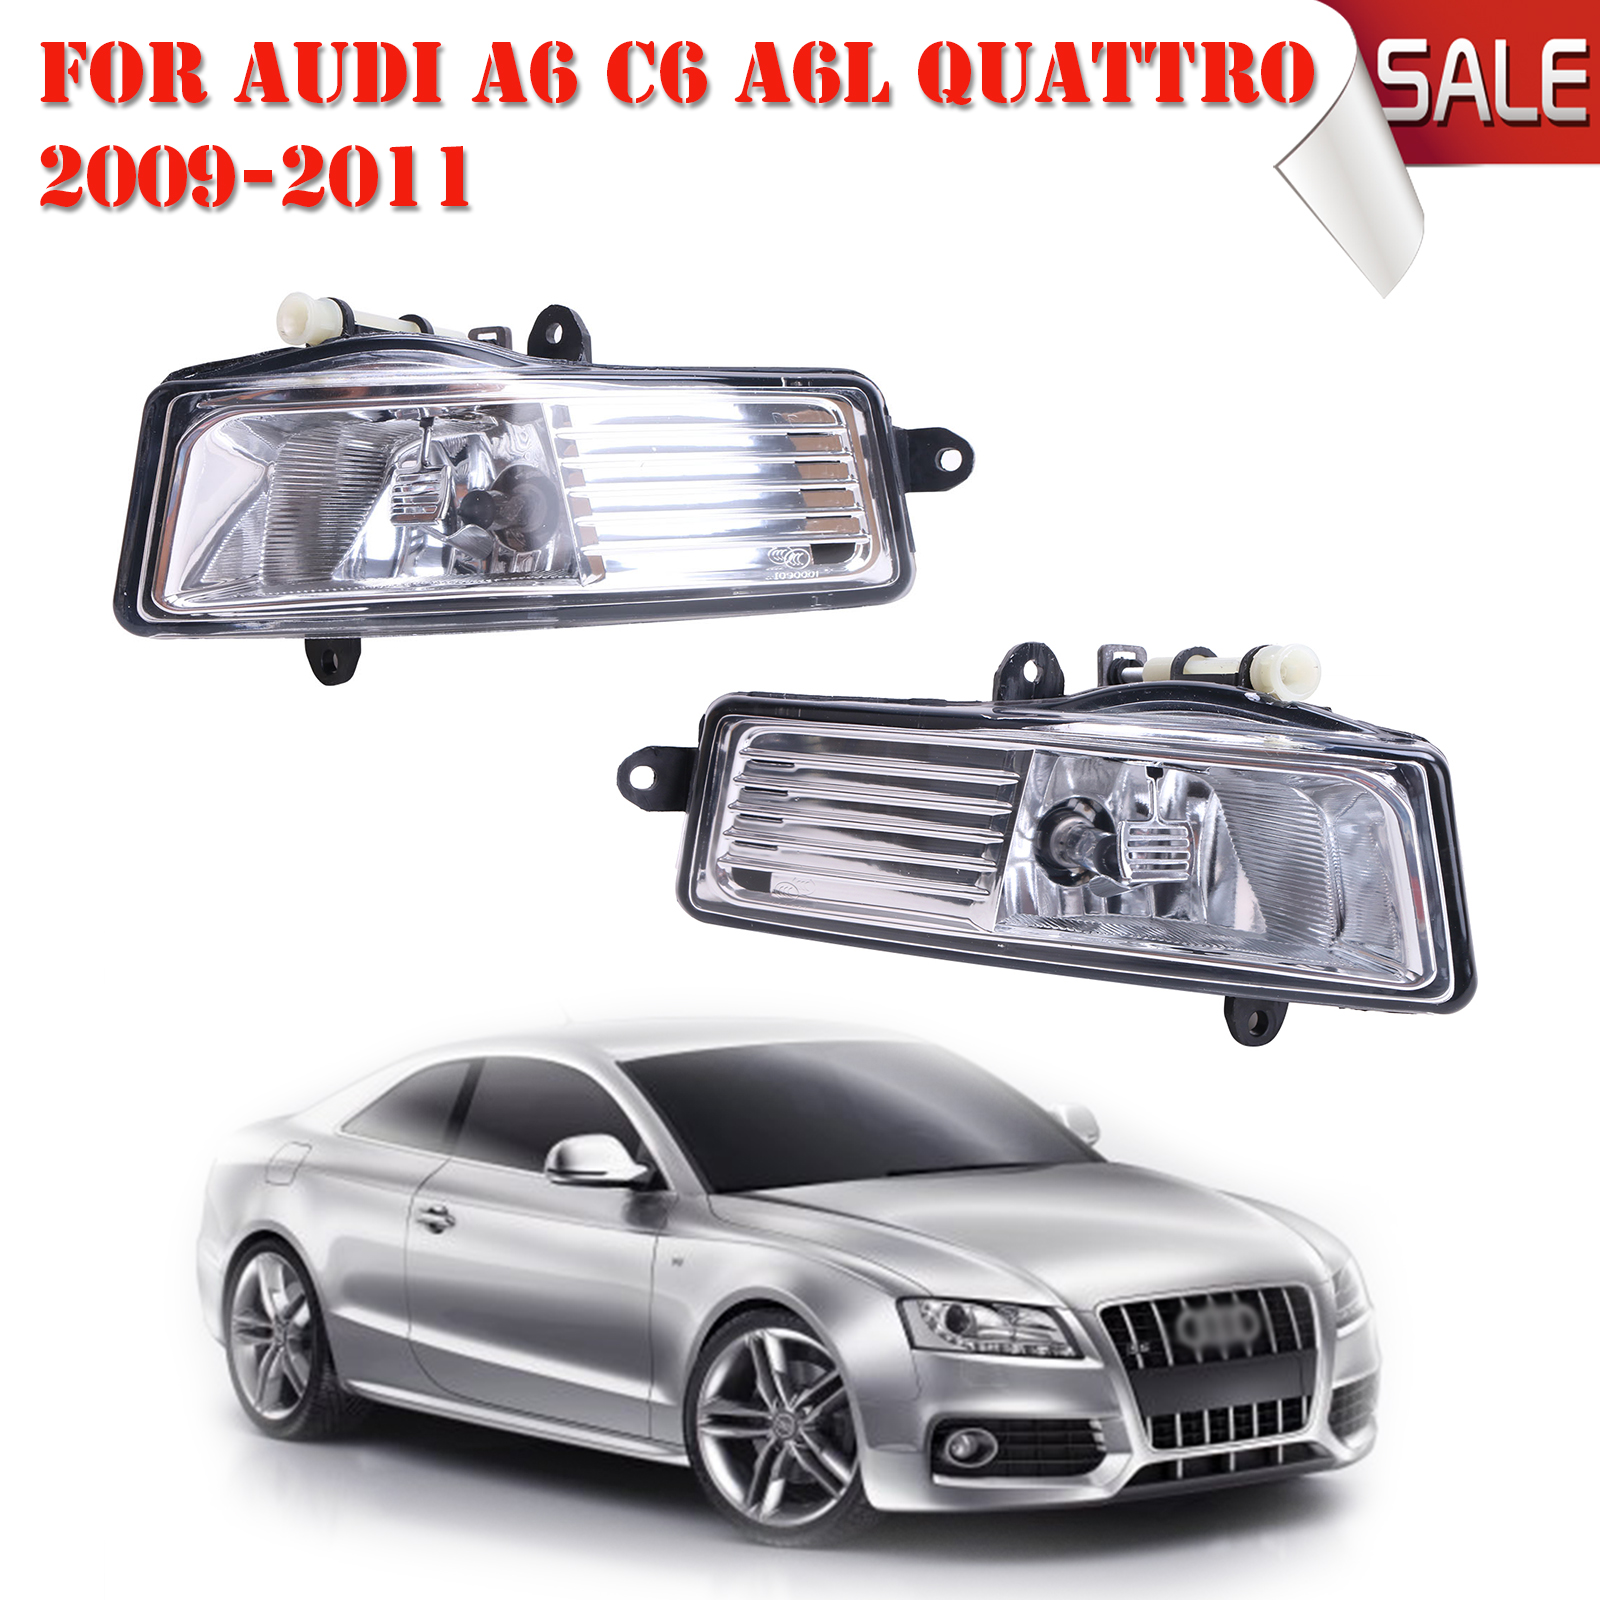 1 Pair Front Fog Lights Foglamps Set For Audi A6 C6 A6L Quattro 2009 2010 2011 4FD941699A + 4FD9416700A Car-Styling P313-F // коробка передач audi 80 quattro б у куплю в донецкой области